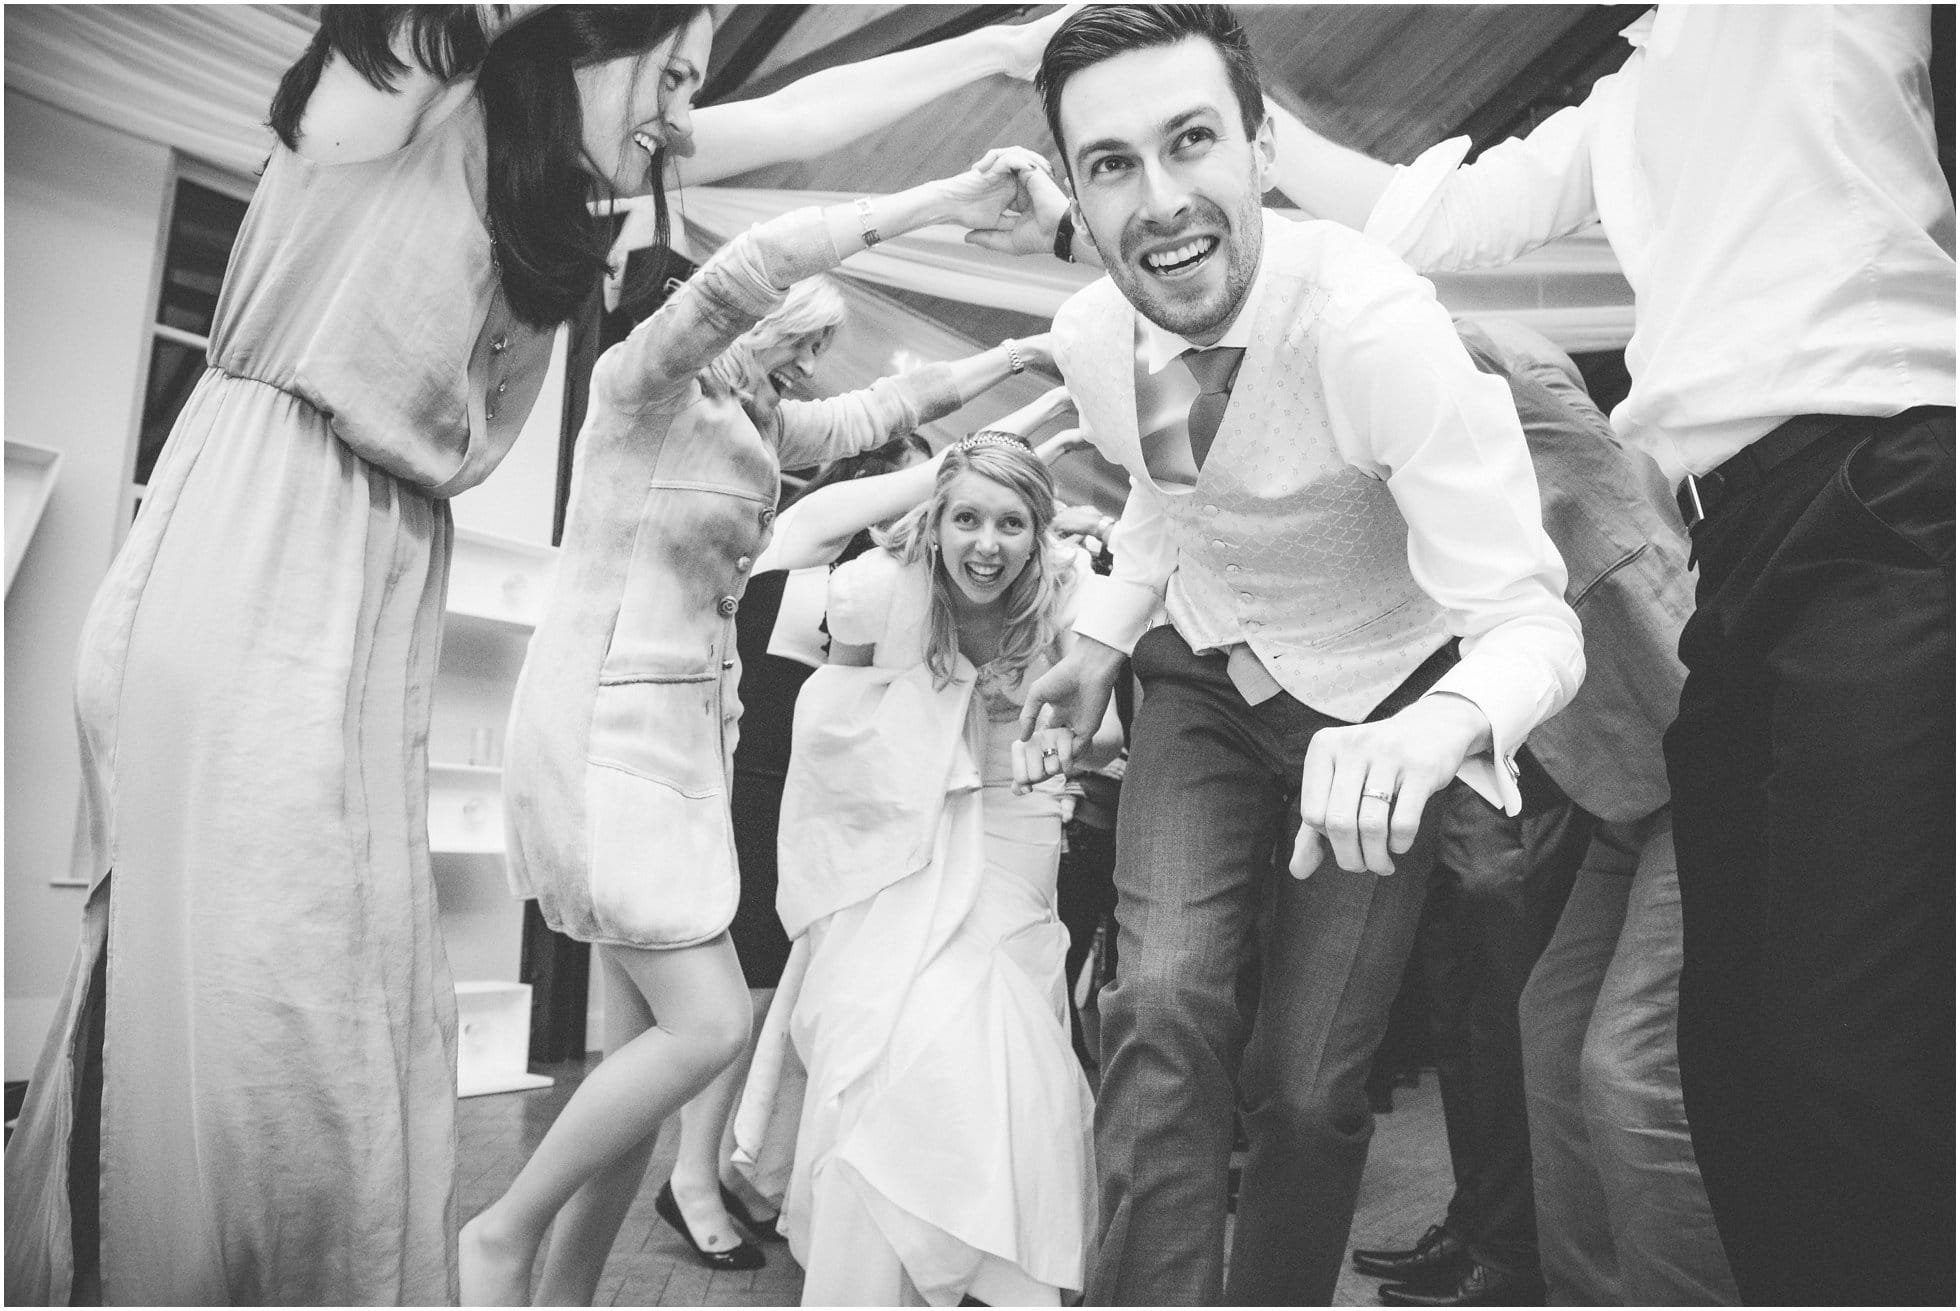 The bride and couple enjoying their wedding ceilidh at Brooksby Hall, Leicestershire: Fun photography!